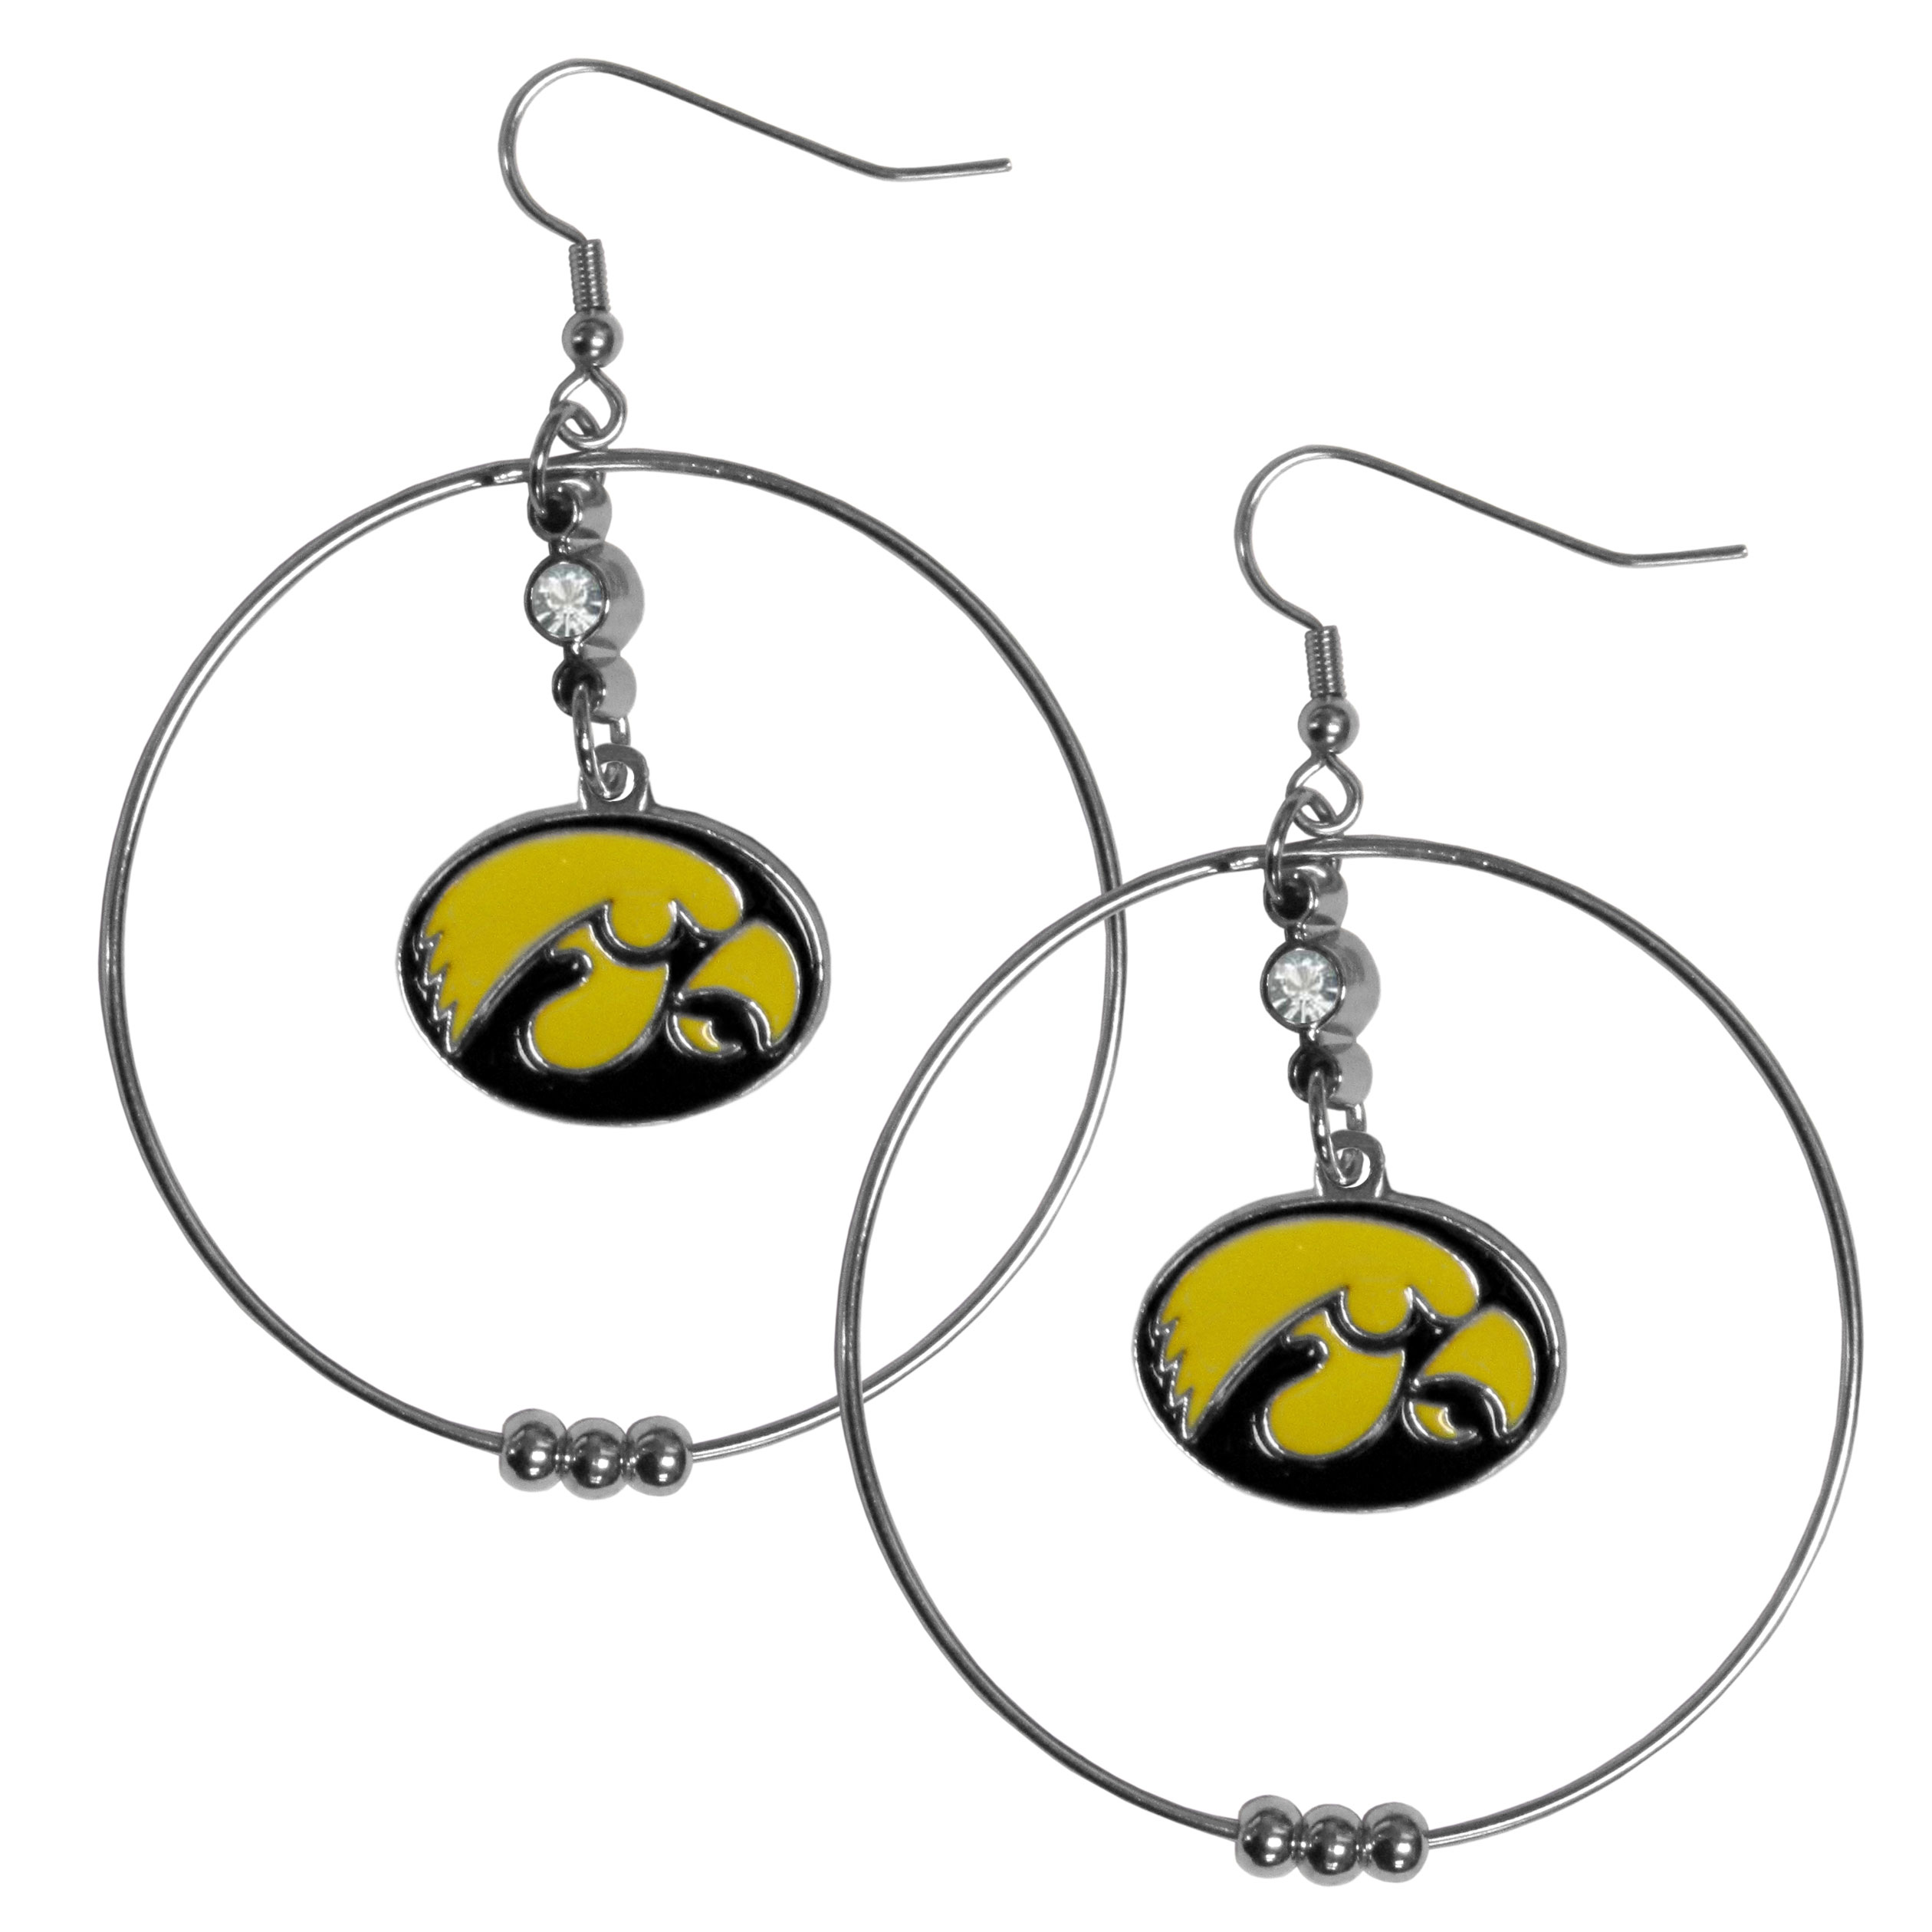 Iowa Hawkeyes 2 Inch Hoop Earrings - Our large hoop earrings have a fully cast and enameled Iowa Hawkeyes charm with enameled detail and a high polish nickel free chrome finish and rhinestone access. Hypoallergenic fishhook posts.